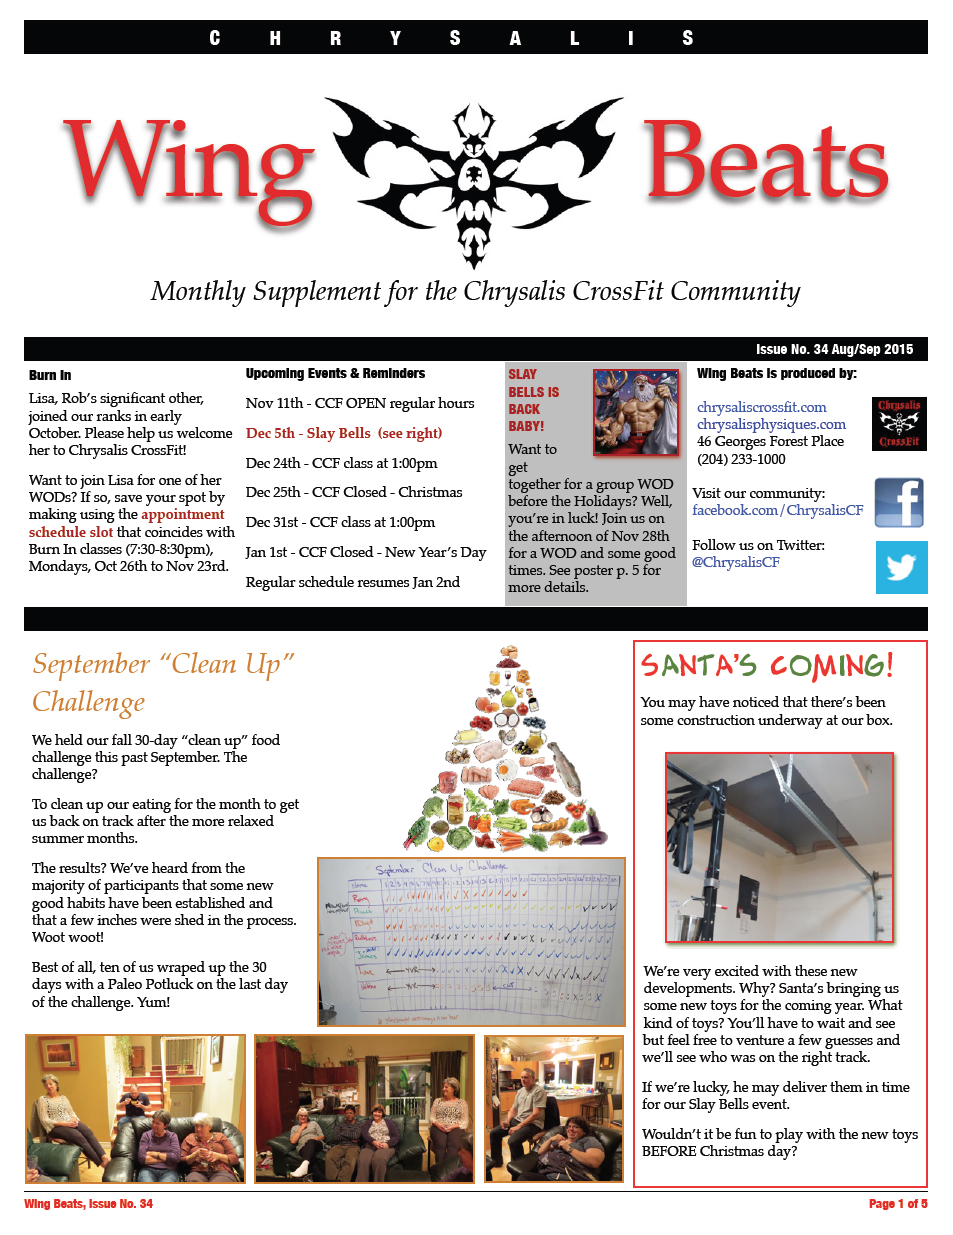 WingBeats Issue #34 - AugSep 2015